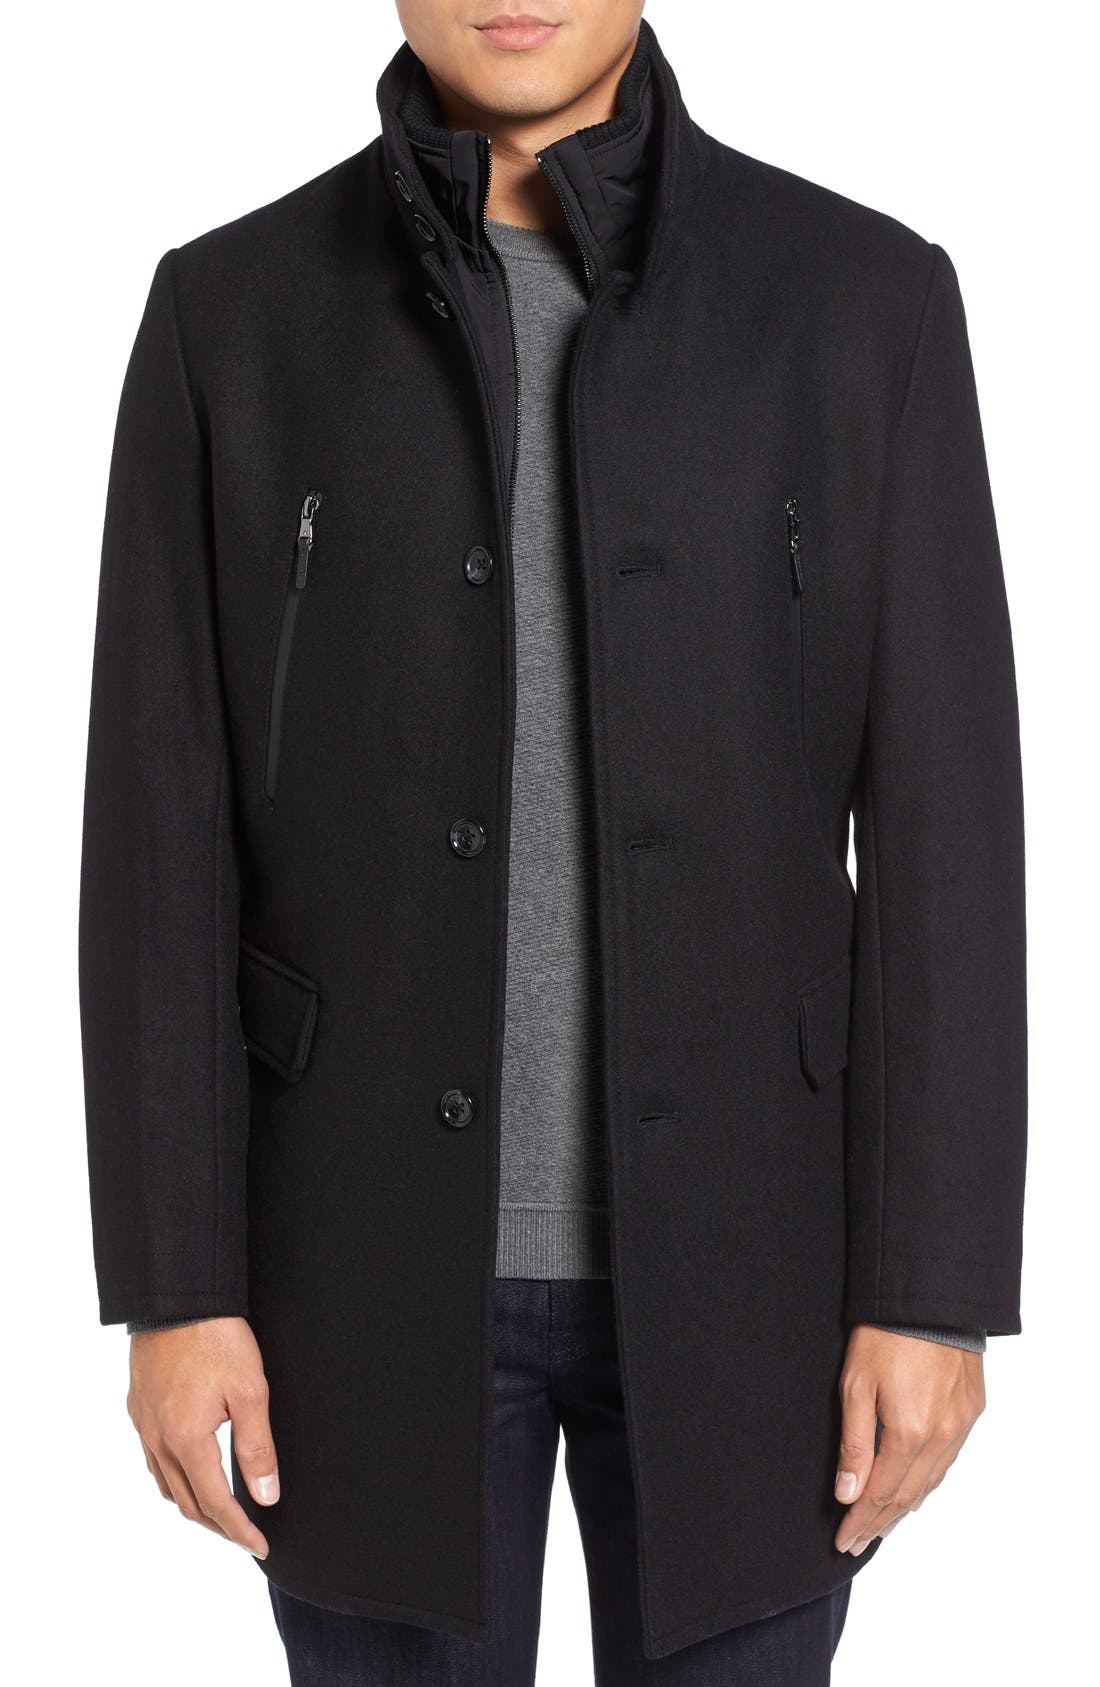 Alternate Image 1 Selected - Michael Kors Wool Blend Topcoat